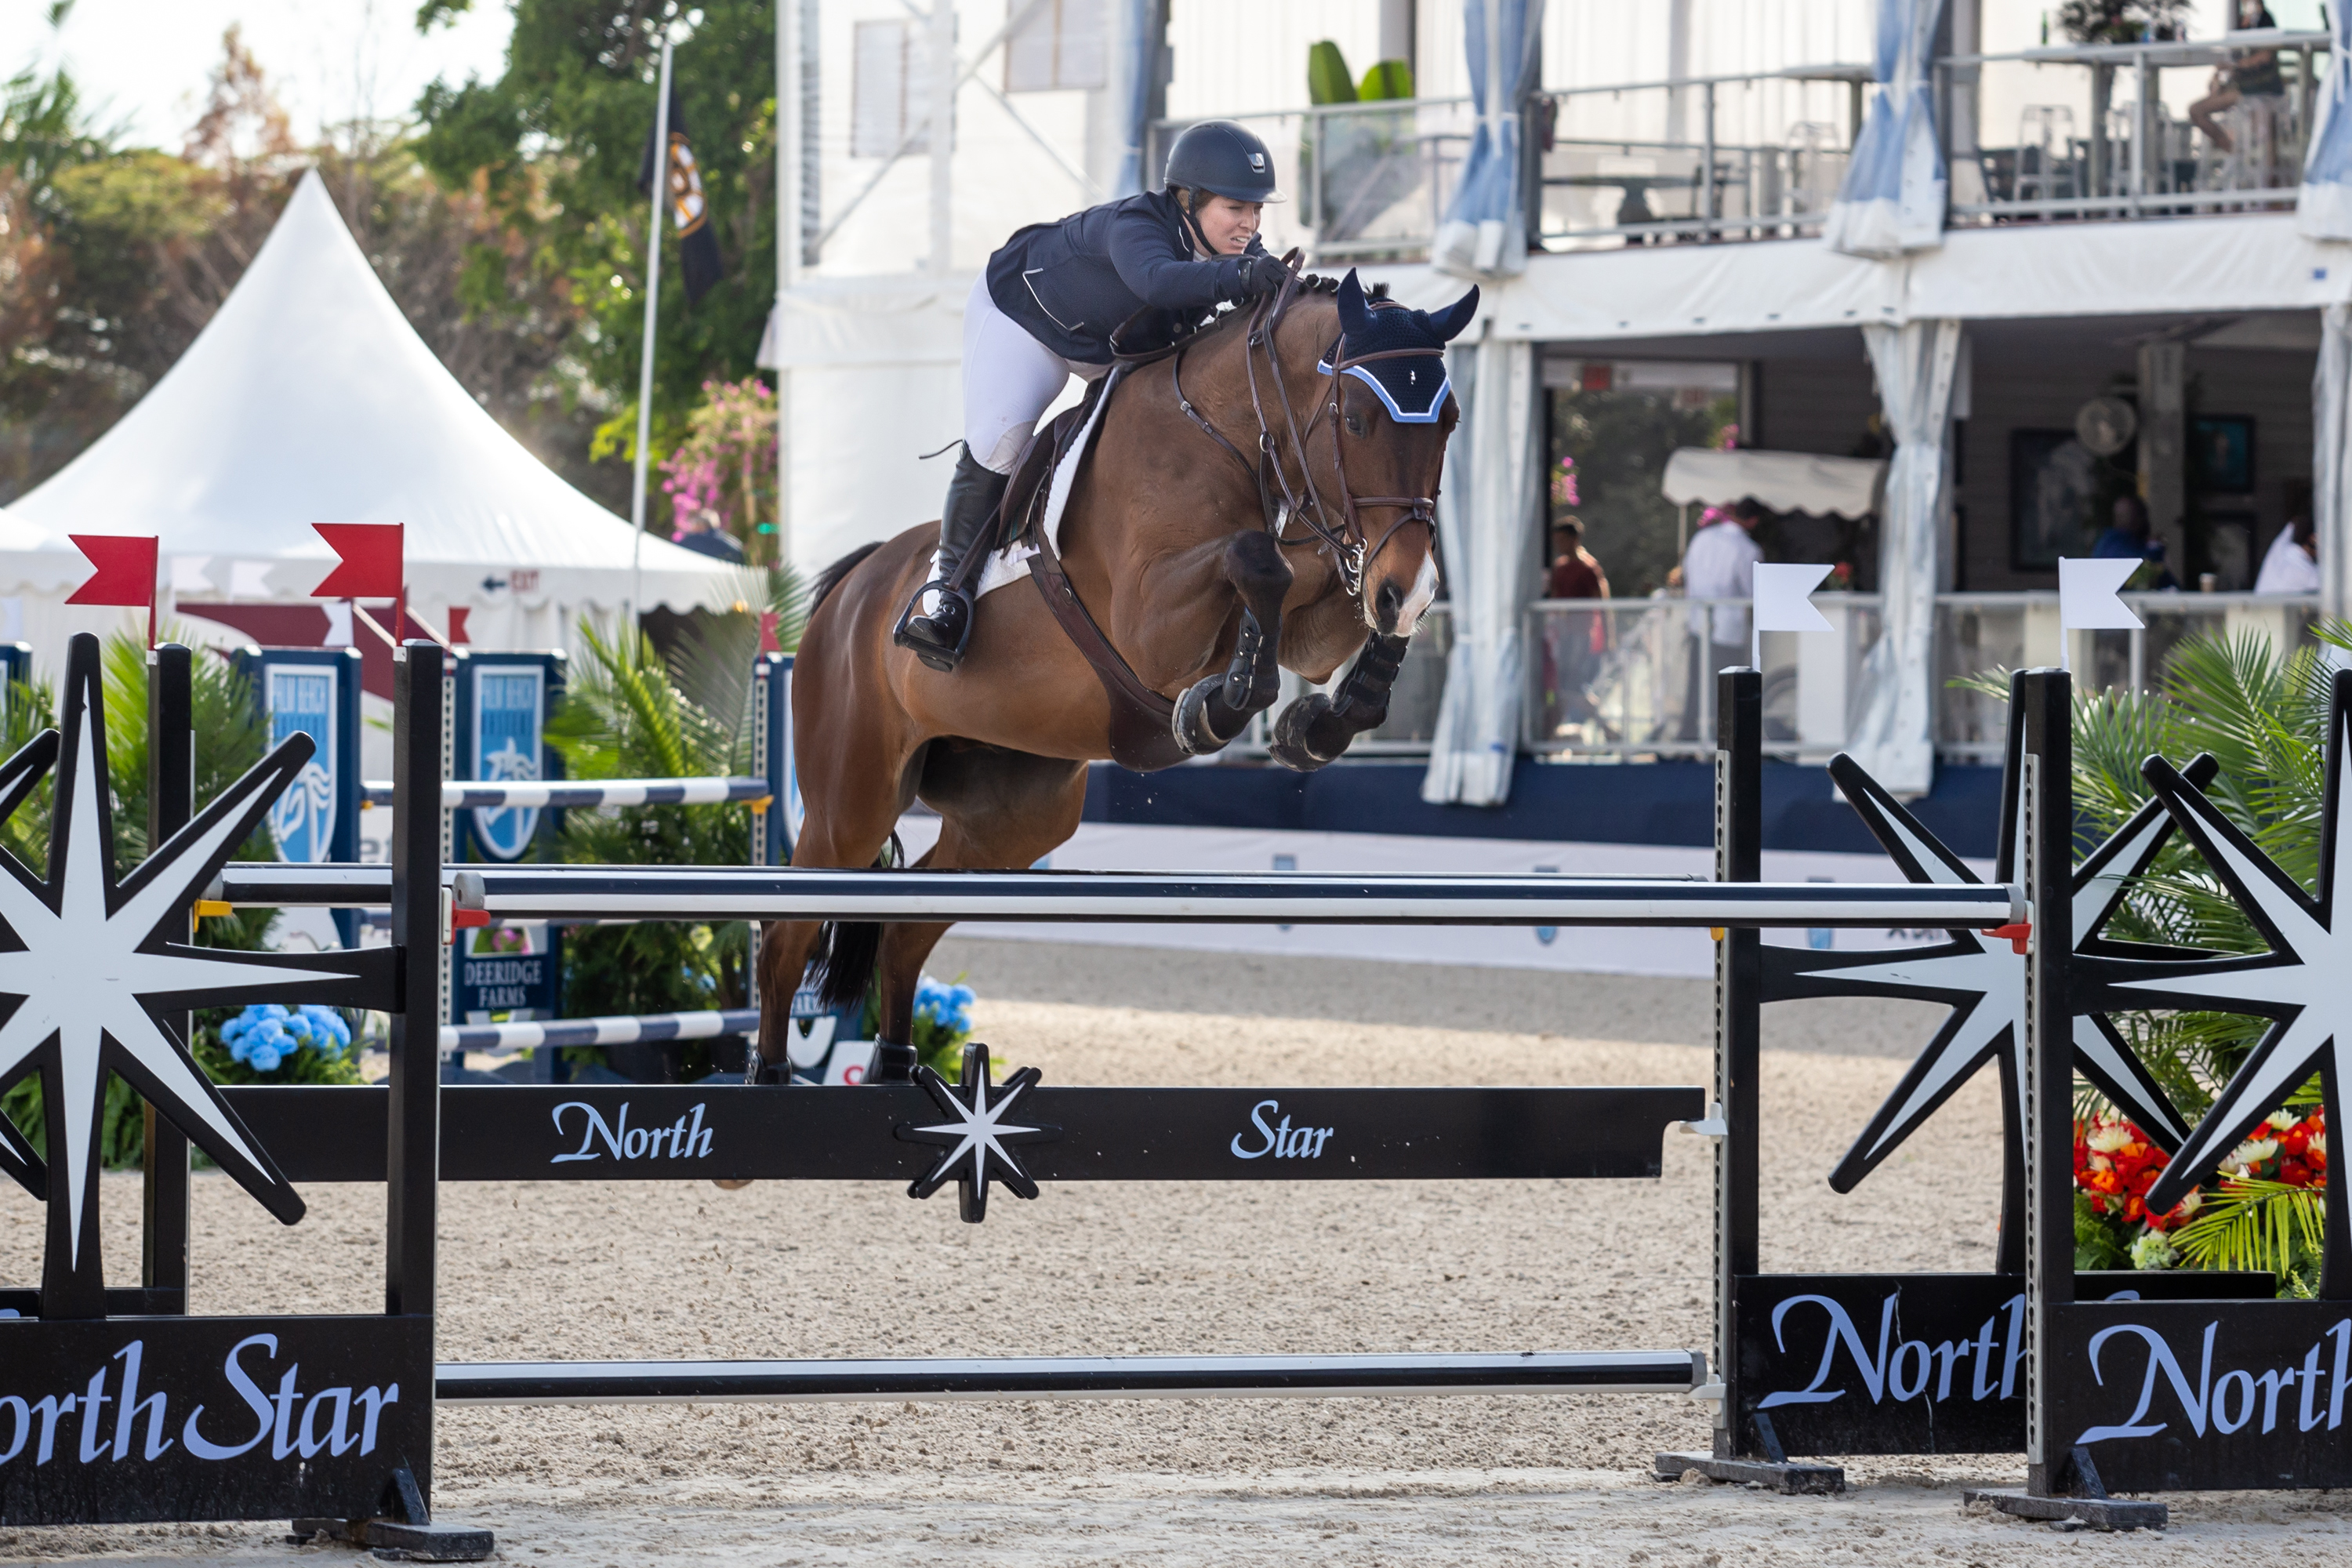 Nicole Lakin and Capitain de Flobecq by Jump Media-2039 (1)